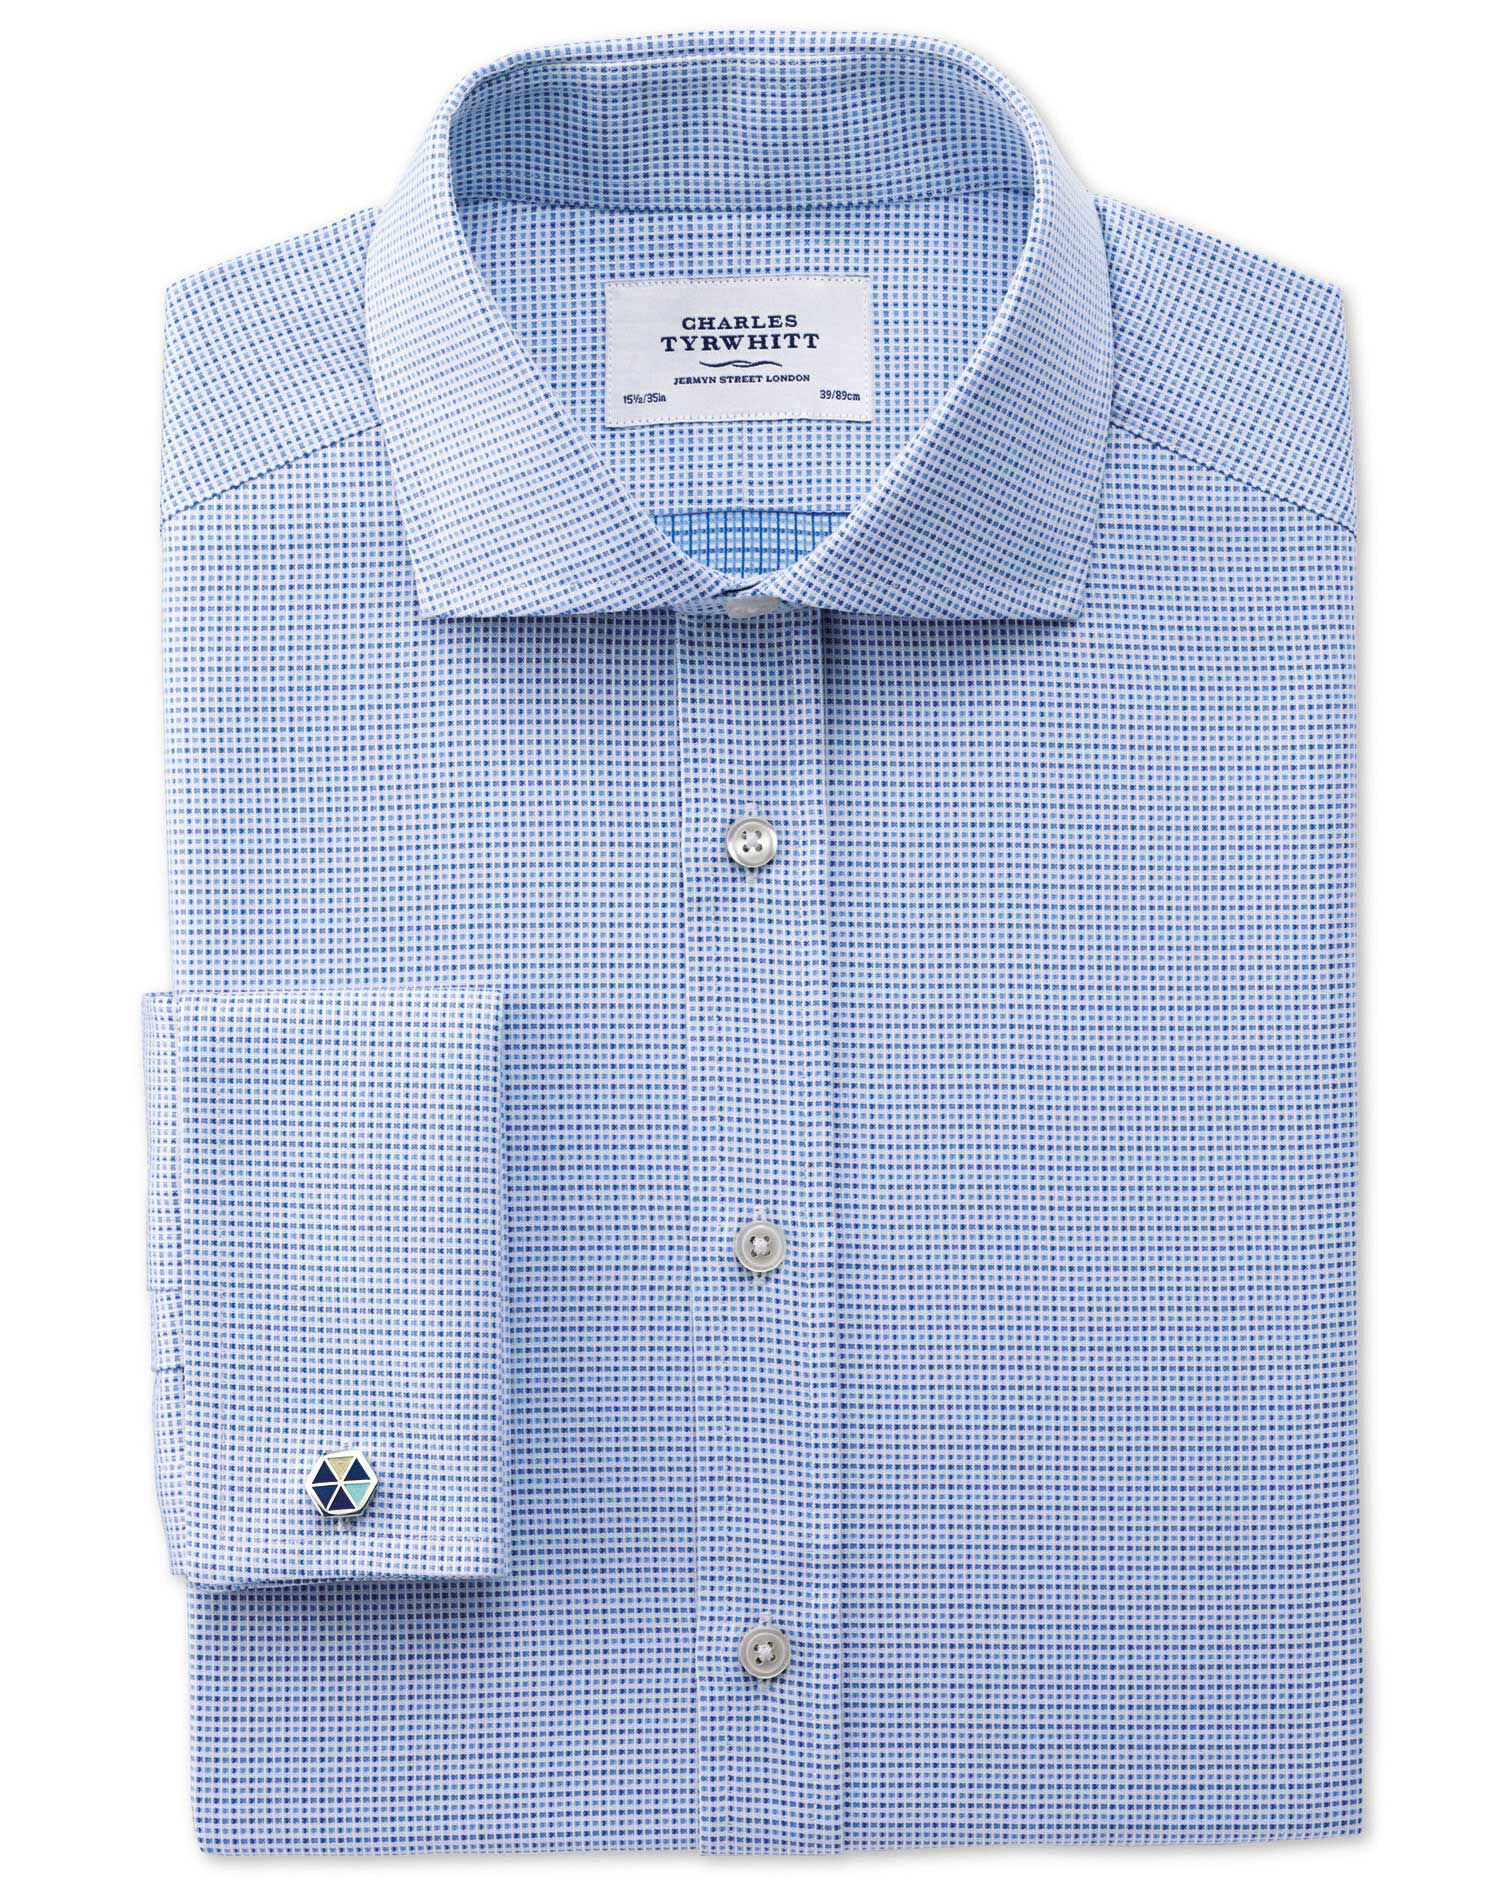 Extra Slim Fit Cutaway Collar Egyptian Cotton Textured Blue Formal Shirt Double Cuff Size 16/36 by C